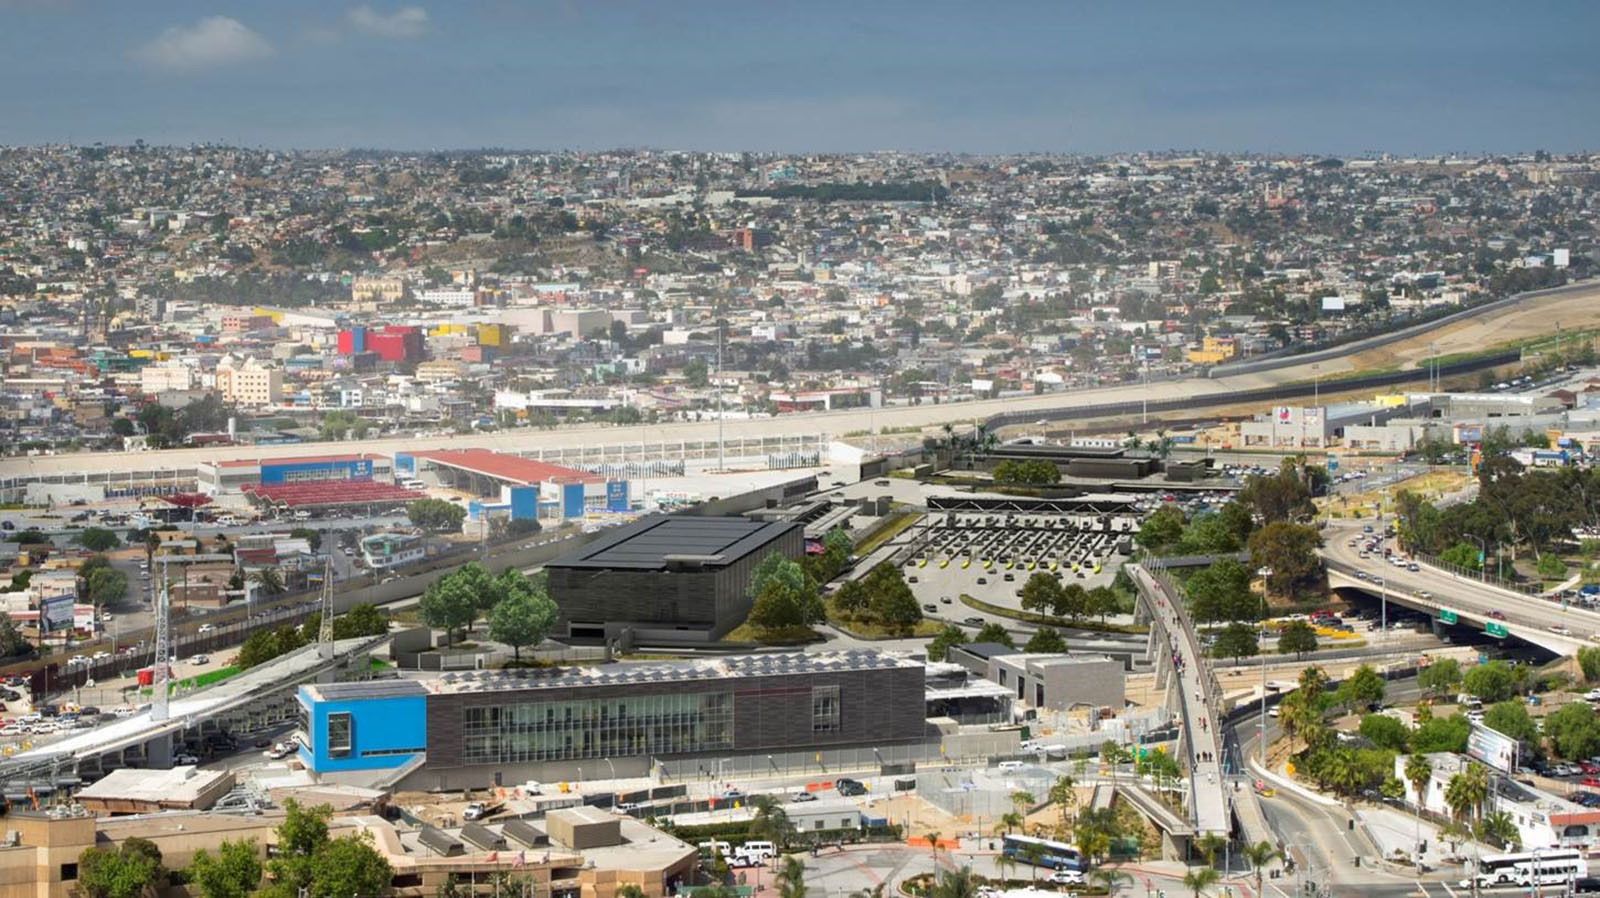 Traffic congestion in San Ysidro produces large amounts of air pollution. 9fdaaacedd